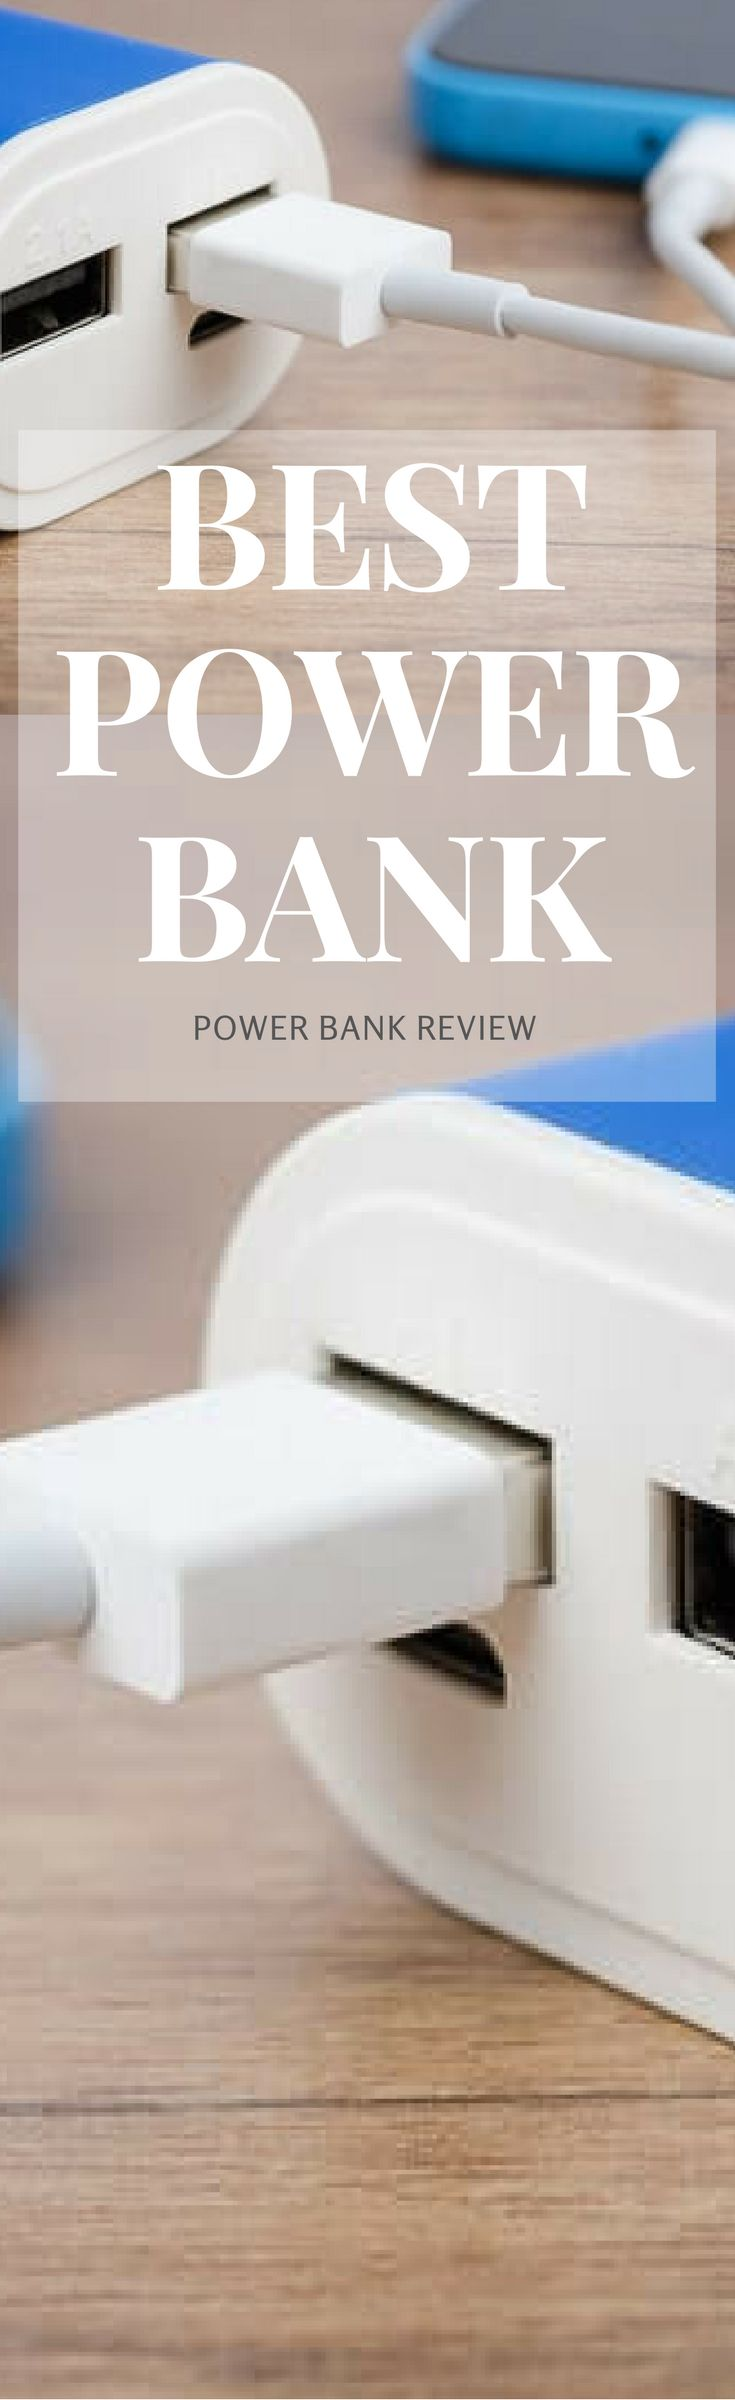 For many people, next to their smartphone or laptop, a good power bank is a must-have travel accessories. Find out which power bank is the ideal for the traveller like you. Check this blog: https://www.universal-traveller.com/best-power-bank-power-bank-review/